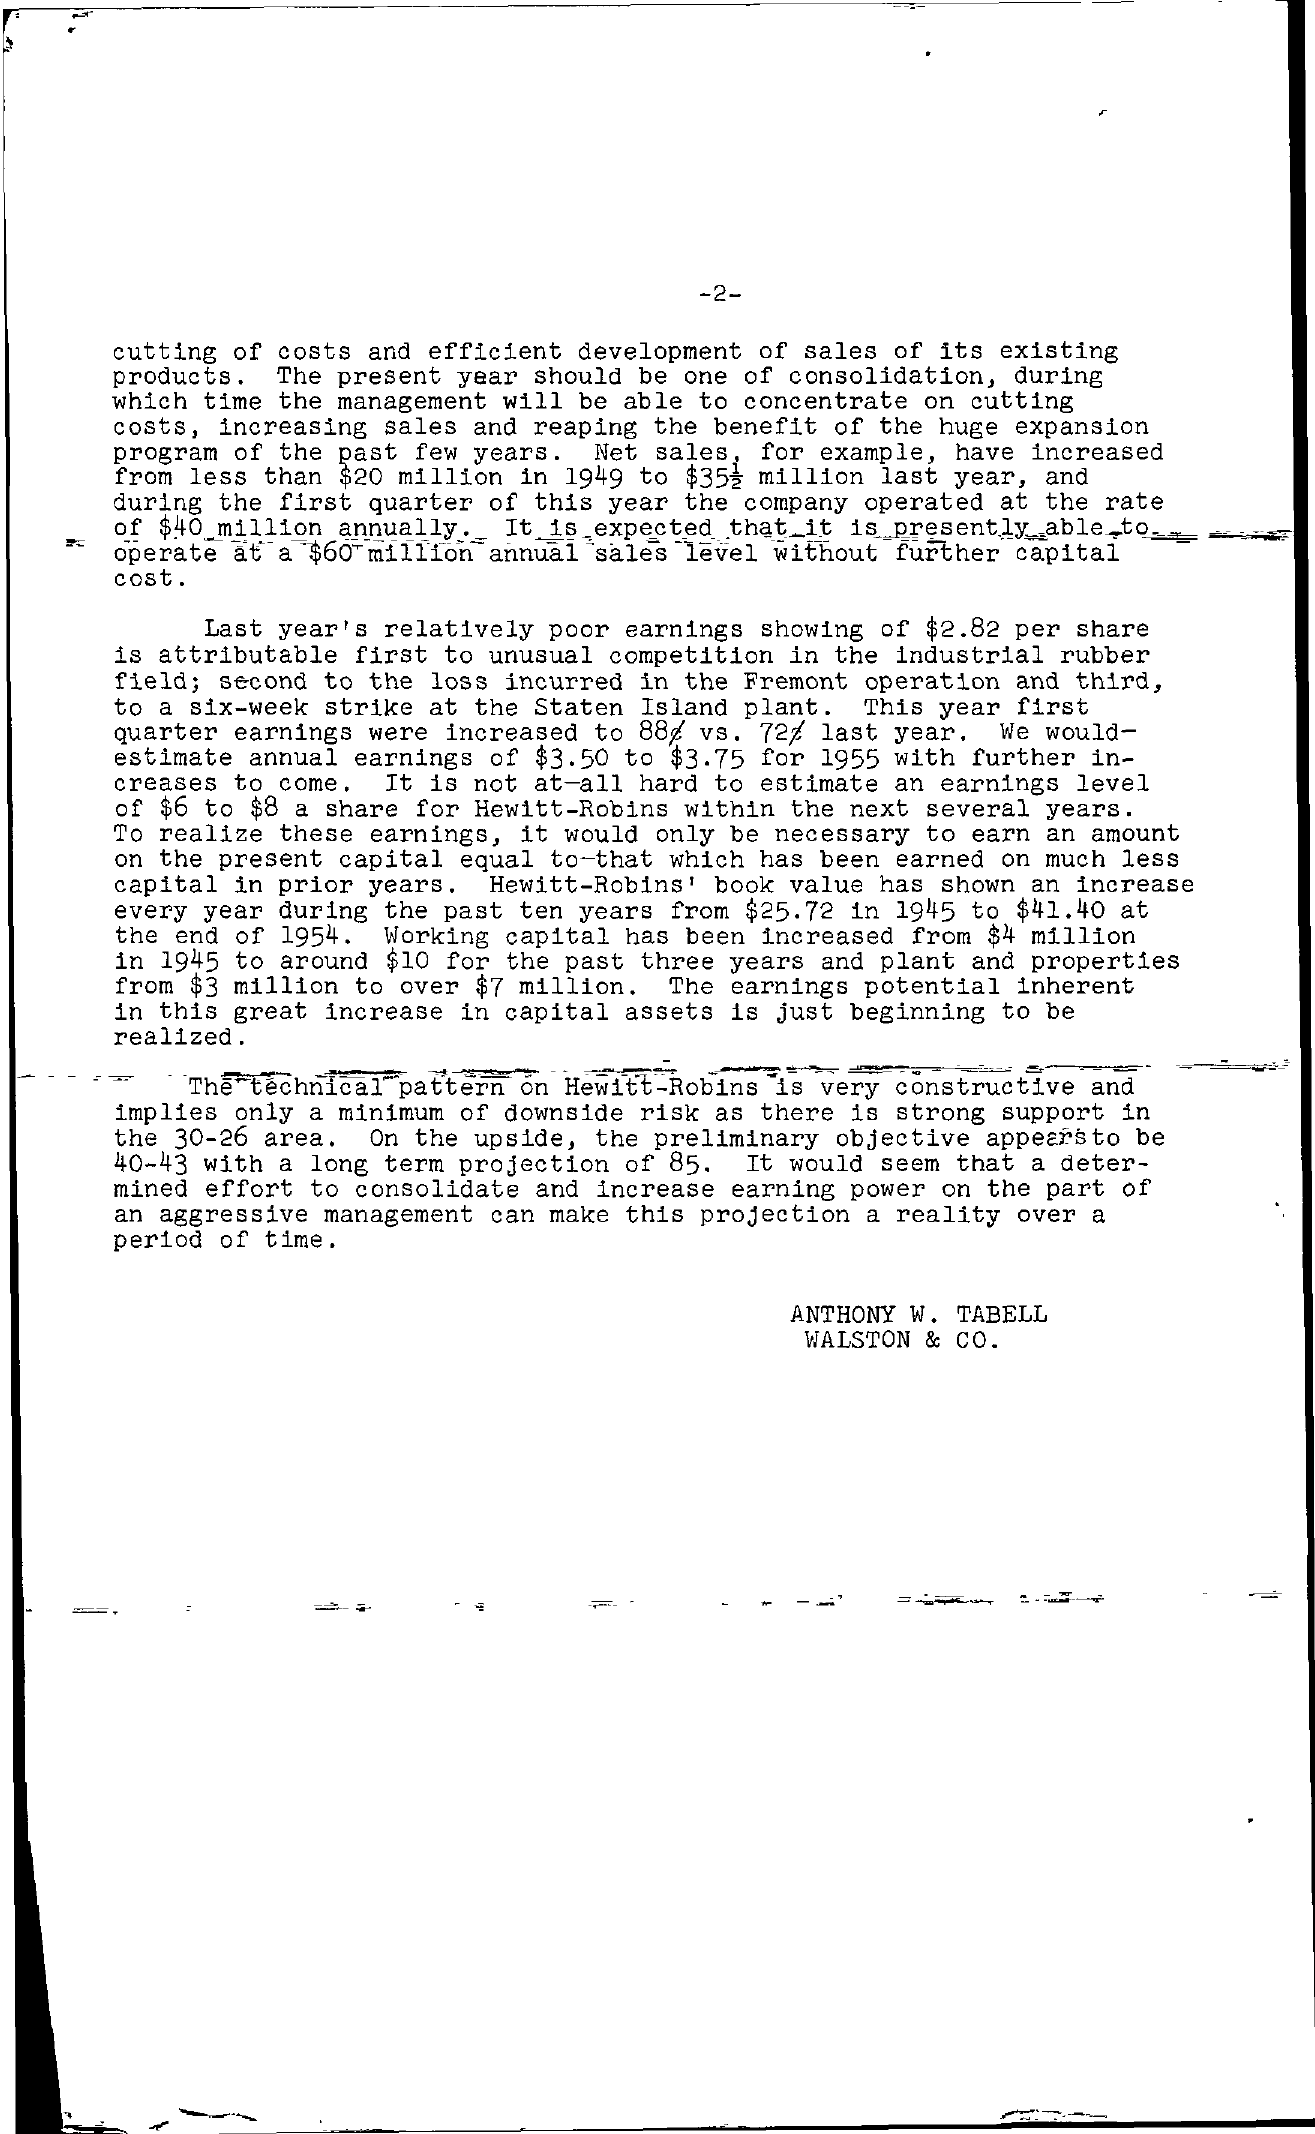 Tabell's Market Letter - May 13, 1955 page 2